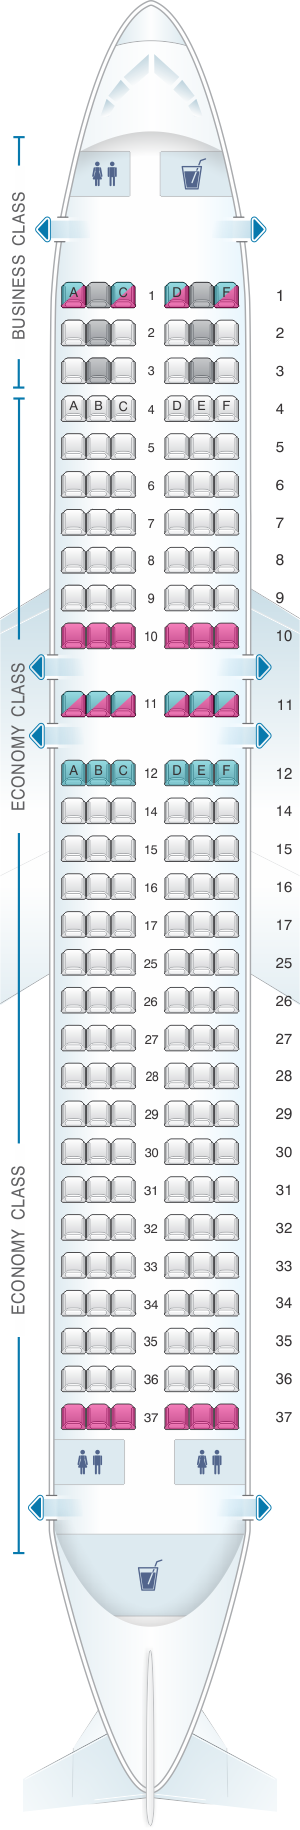 Seat map for Edelweiss Air Airbus A320 200